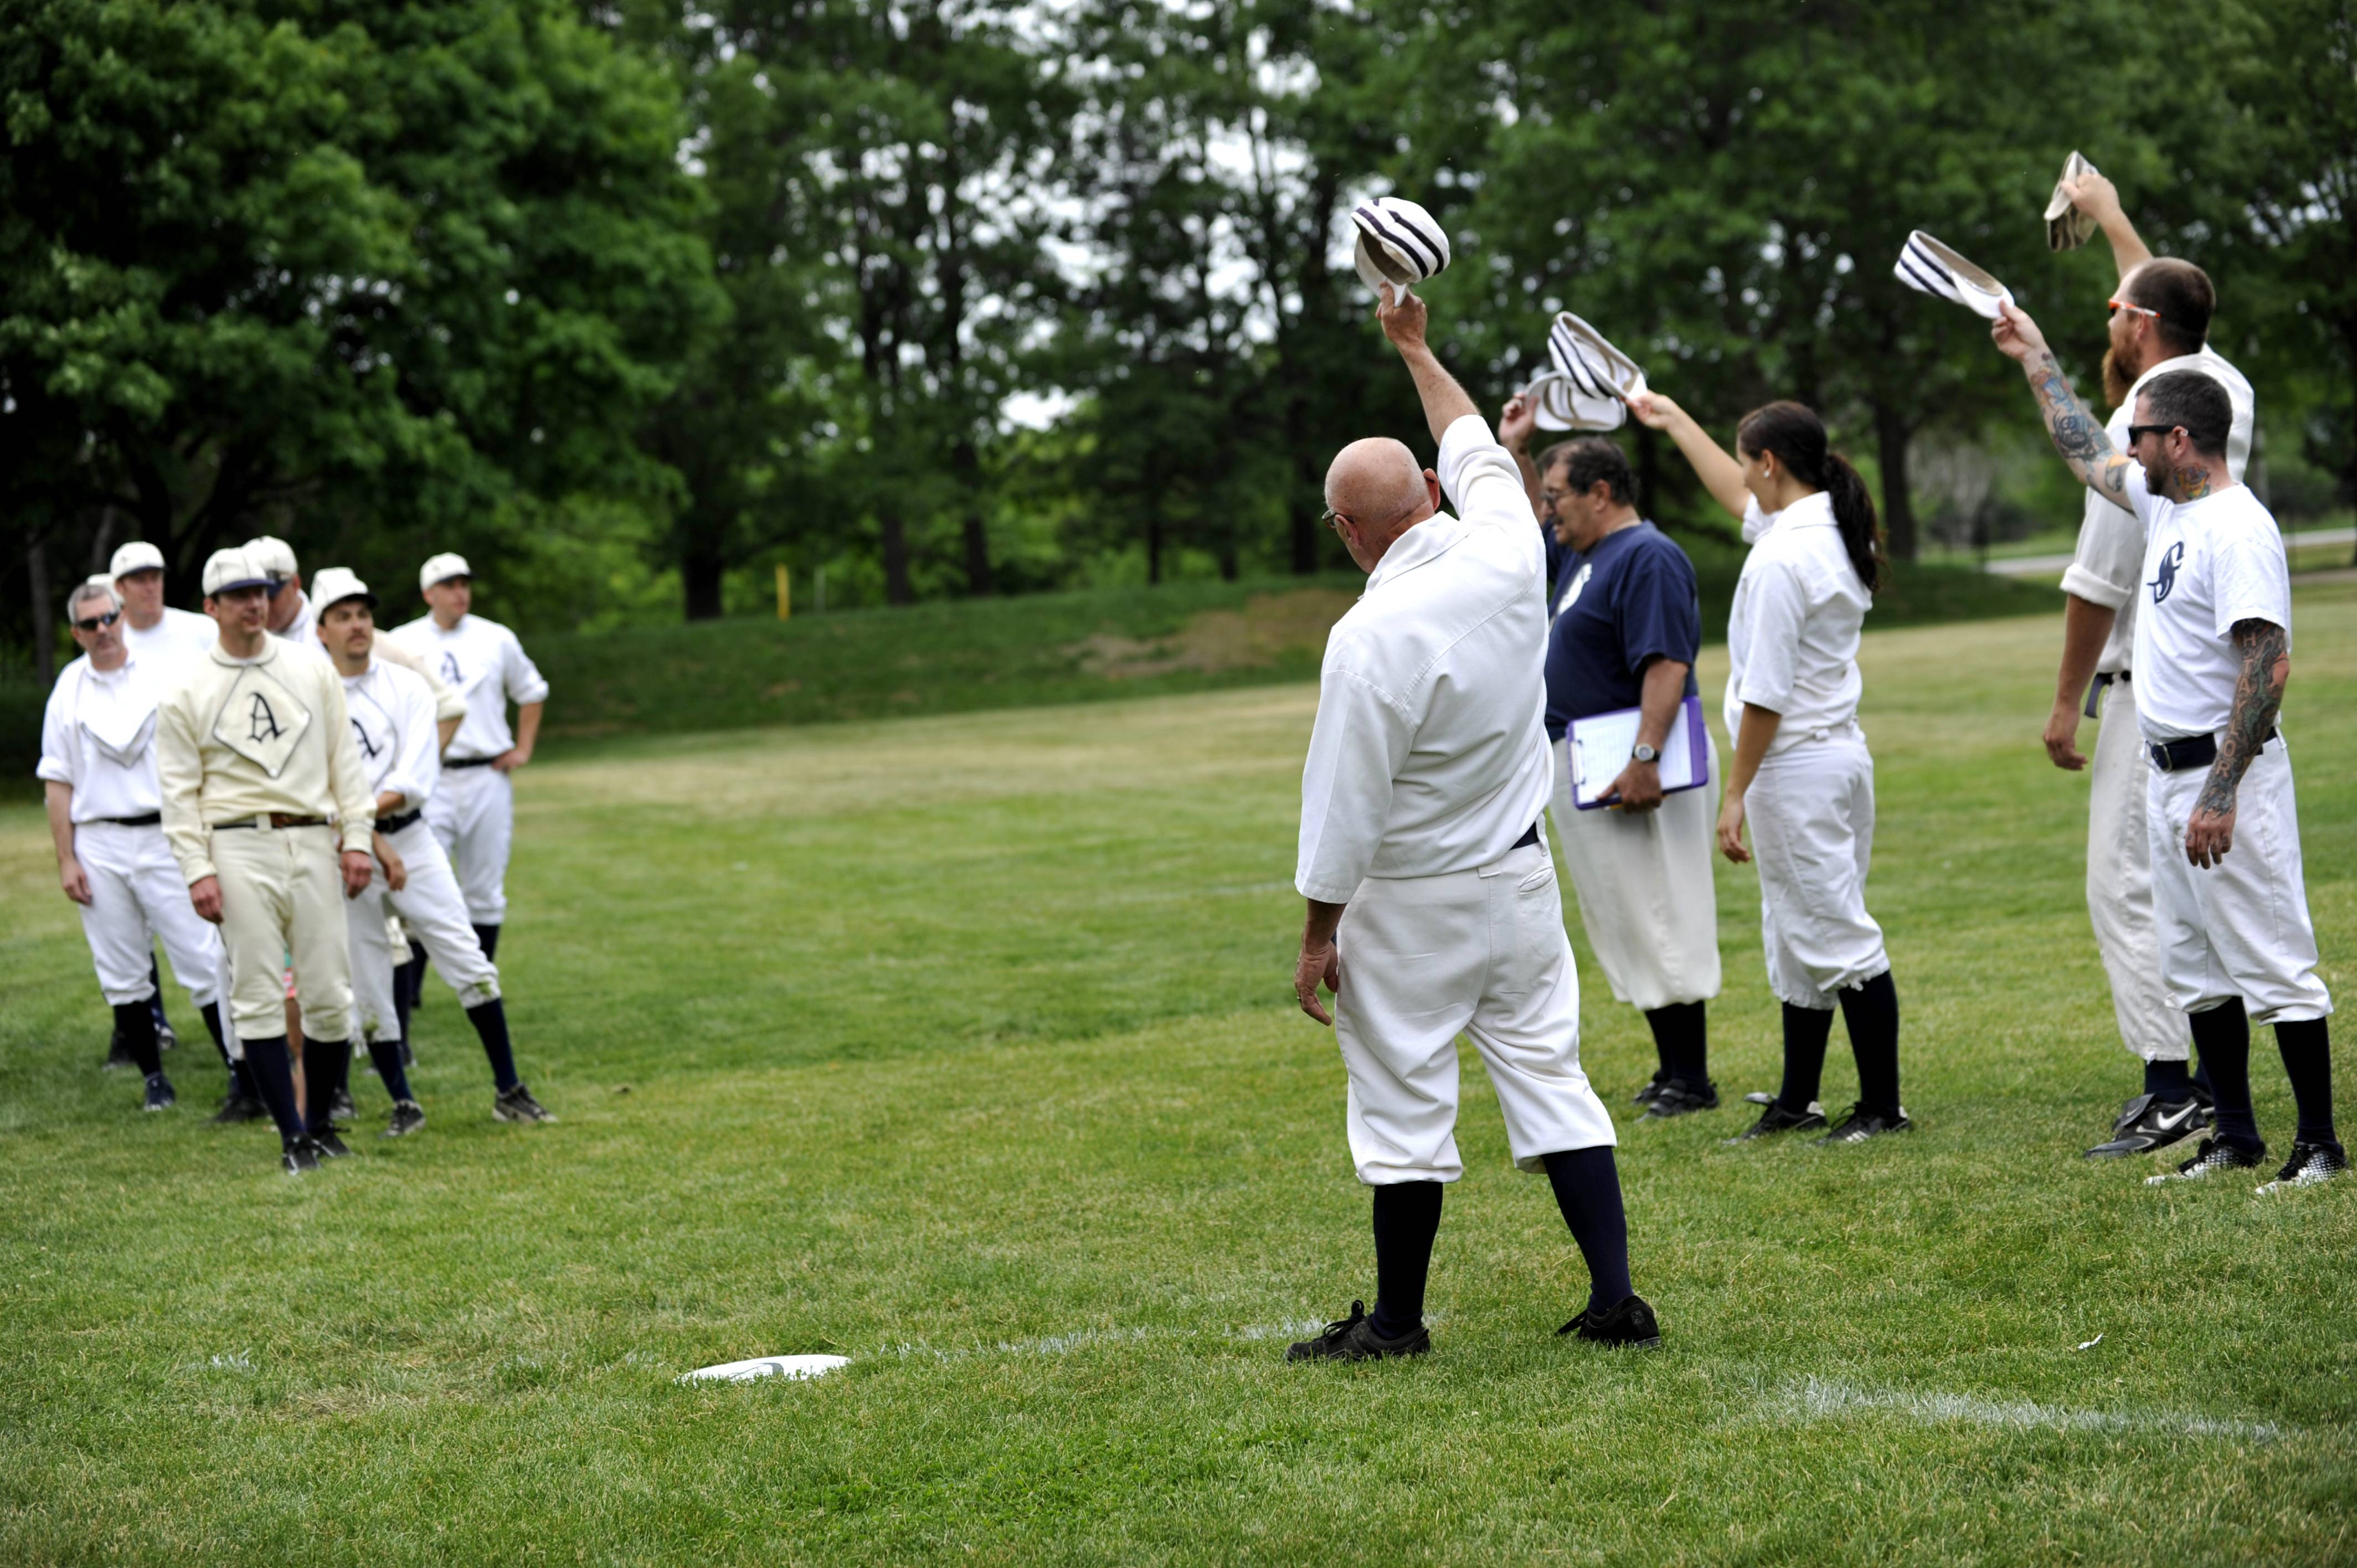 "The Somonauk Blue Stockings vintage baseball league salute their friendly rivals the Aurora Town Club with the traditional ""Hip Hip Hooray!"" at a vintage baseball game at Blackberry Farm in Aurora on Saturday. Mike Adrian of Somonauk, center, started the Blue Stockings, a vintage baseball league nine years ago and this was the third game of the season."